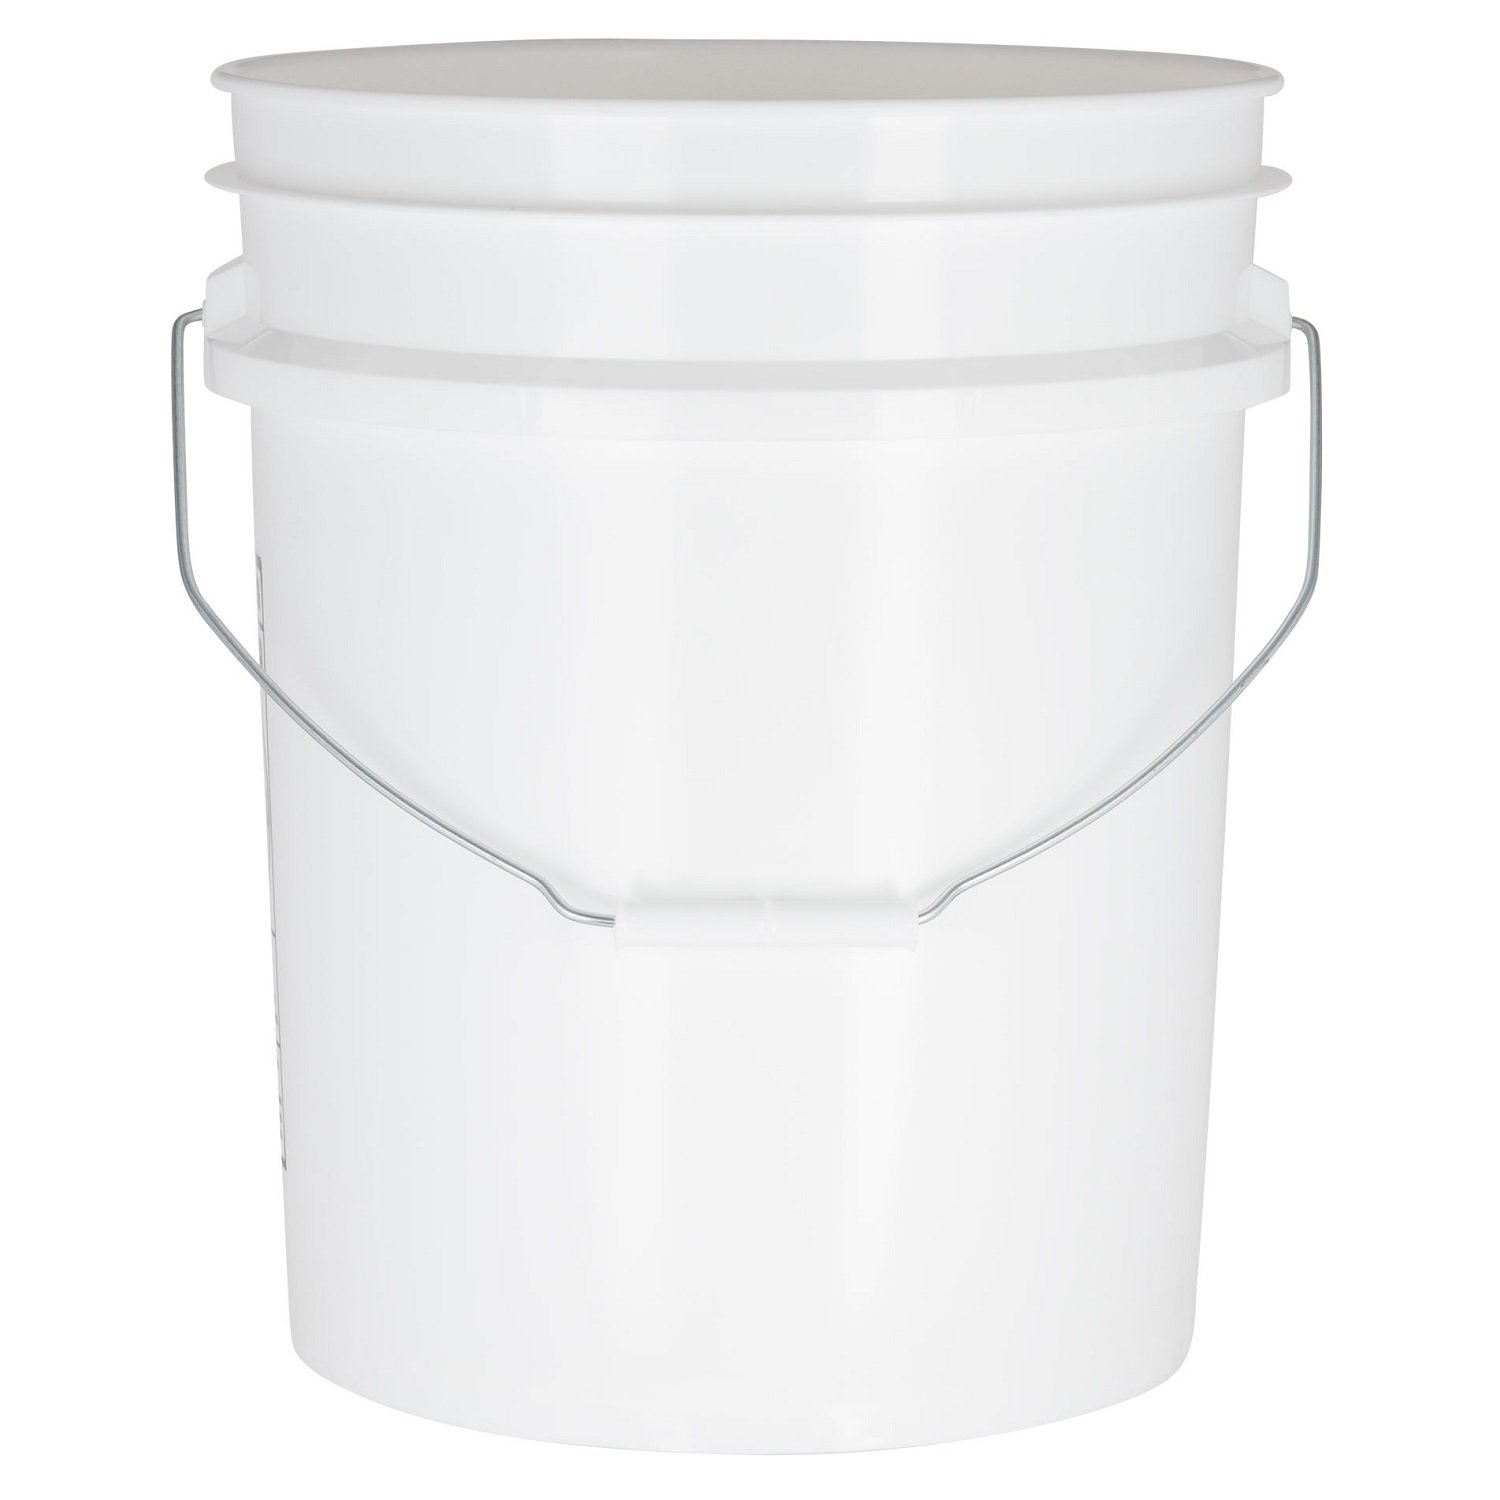 White 5 Gallon Food Grade Bucket - 90 Mil Heavy Duty Plastic Pail with Metal Handle